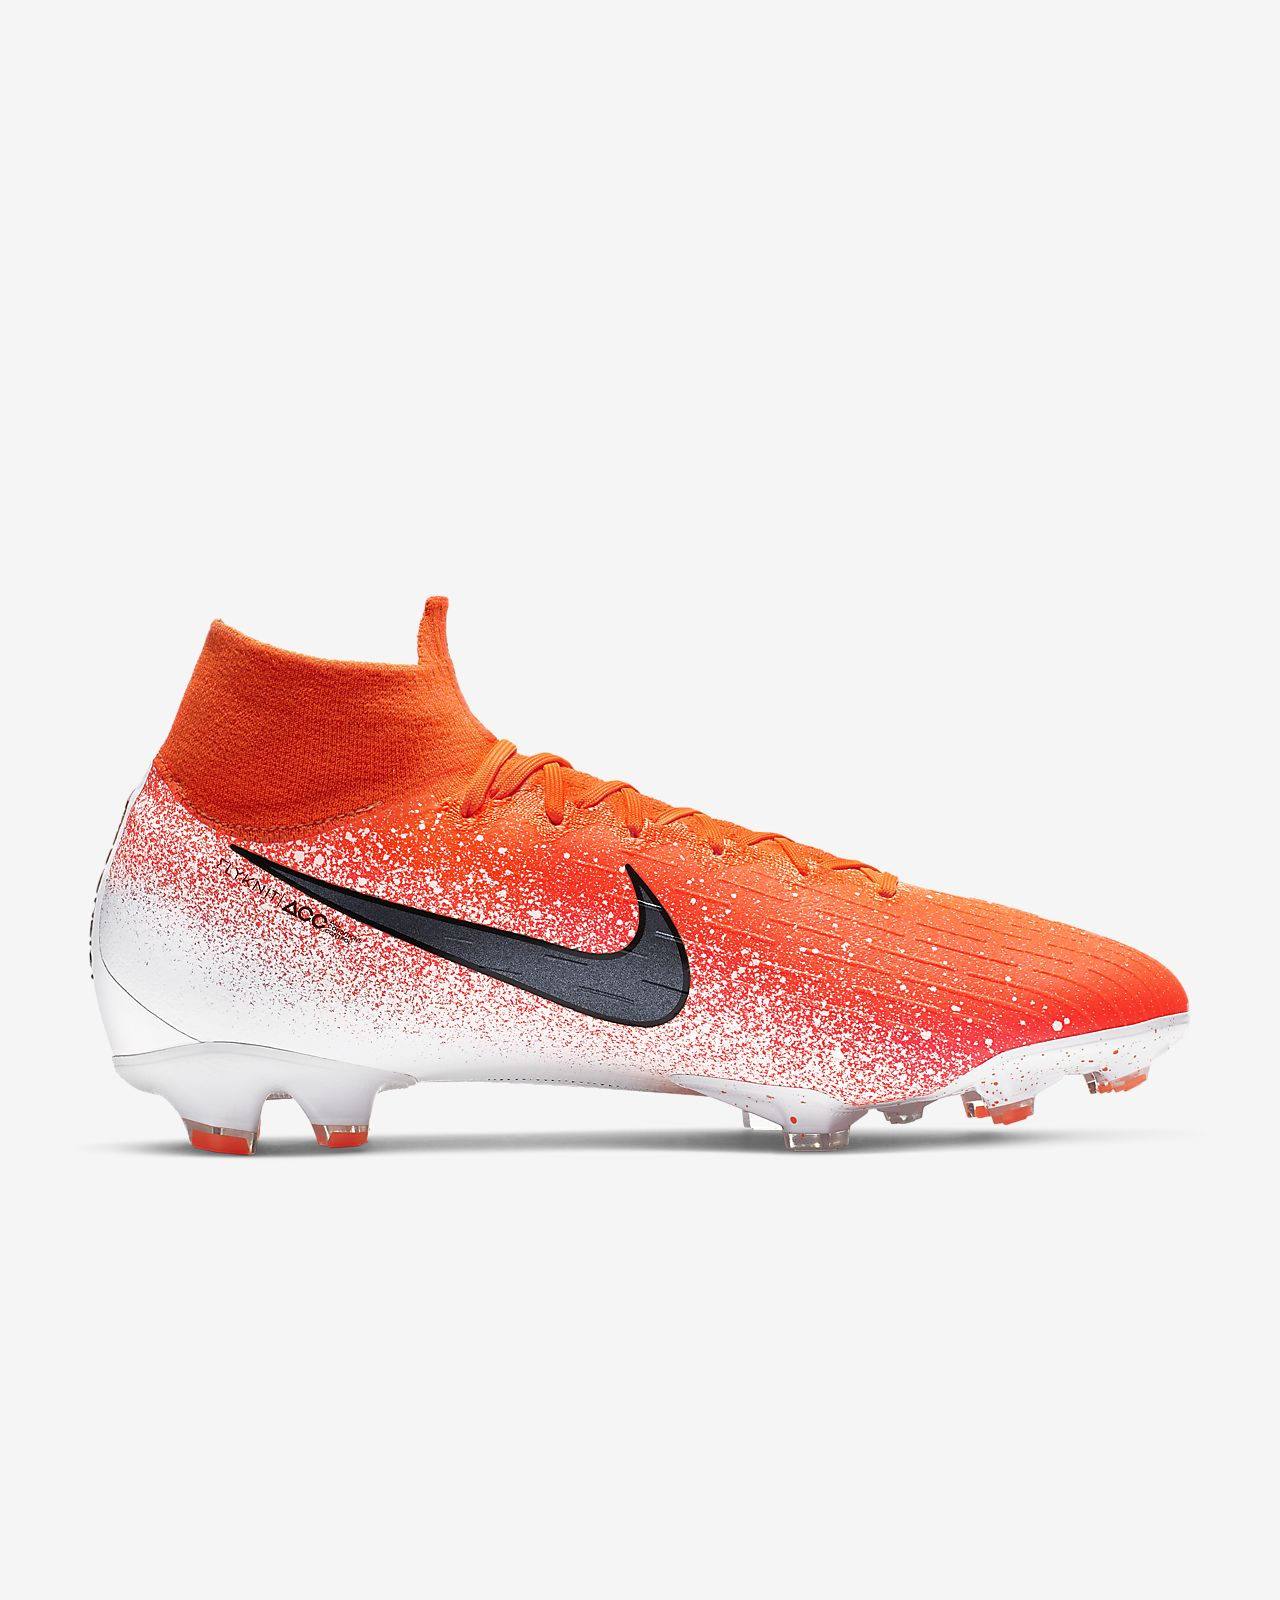 the latest 5b5e7 5483a Nike Superfly 6 Elite FG Firm-Ground Football Boot